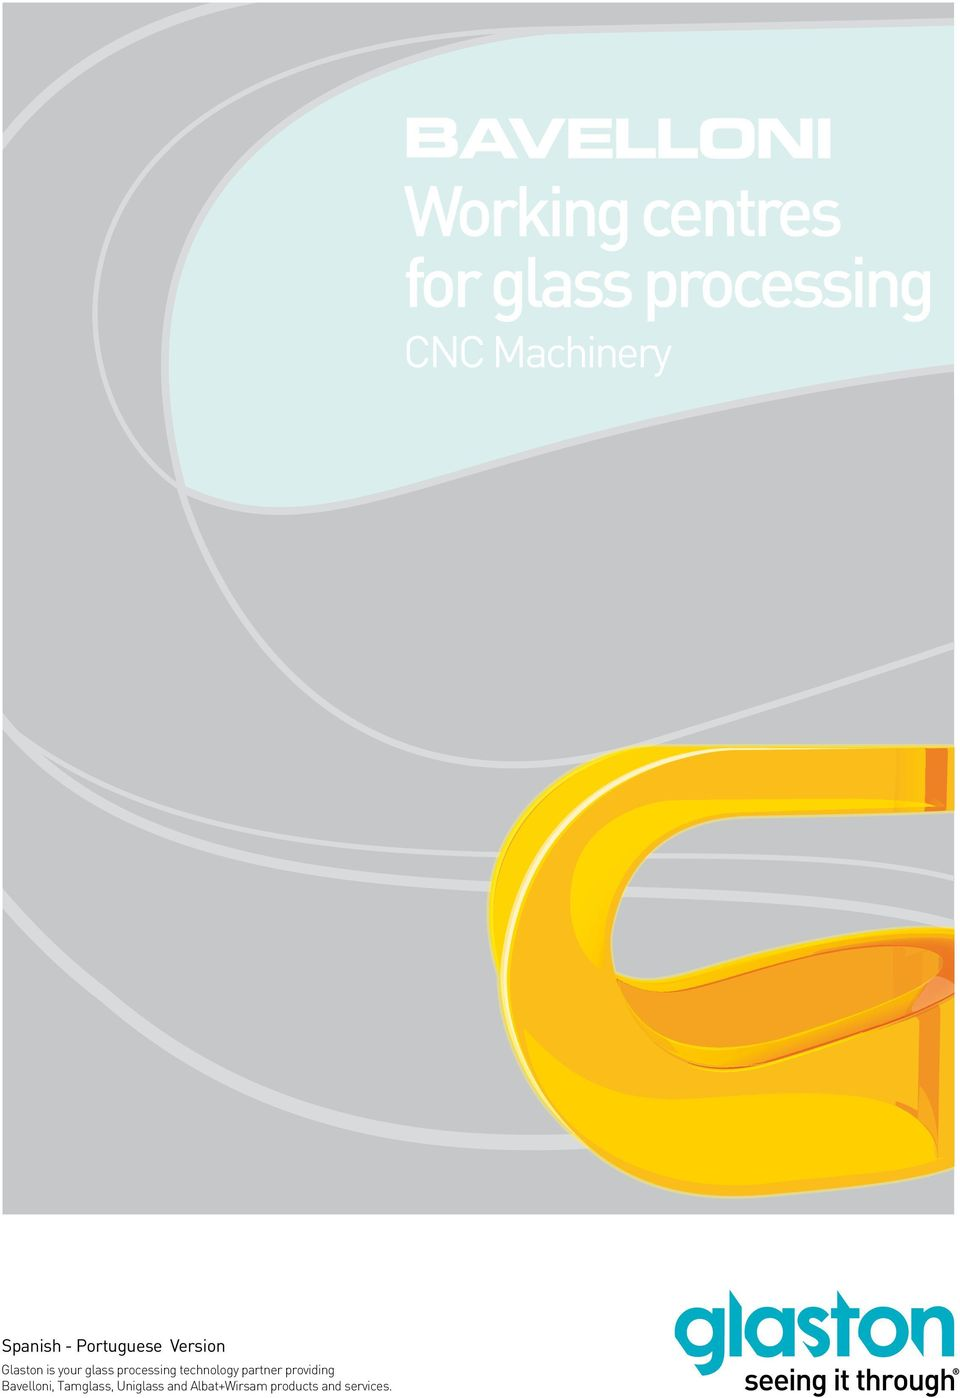 Glaston is your glass processing technology partner